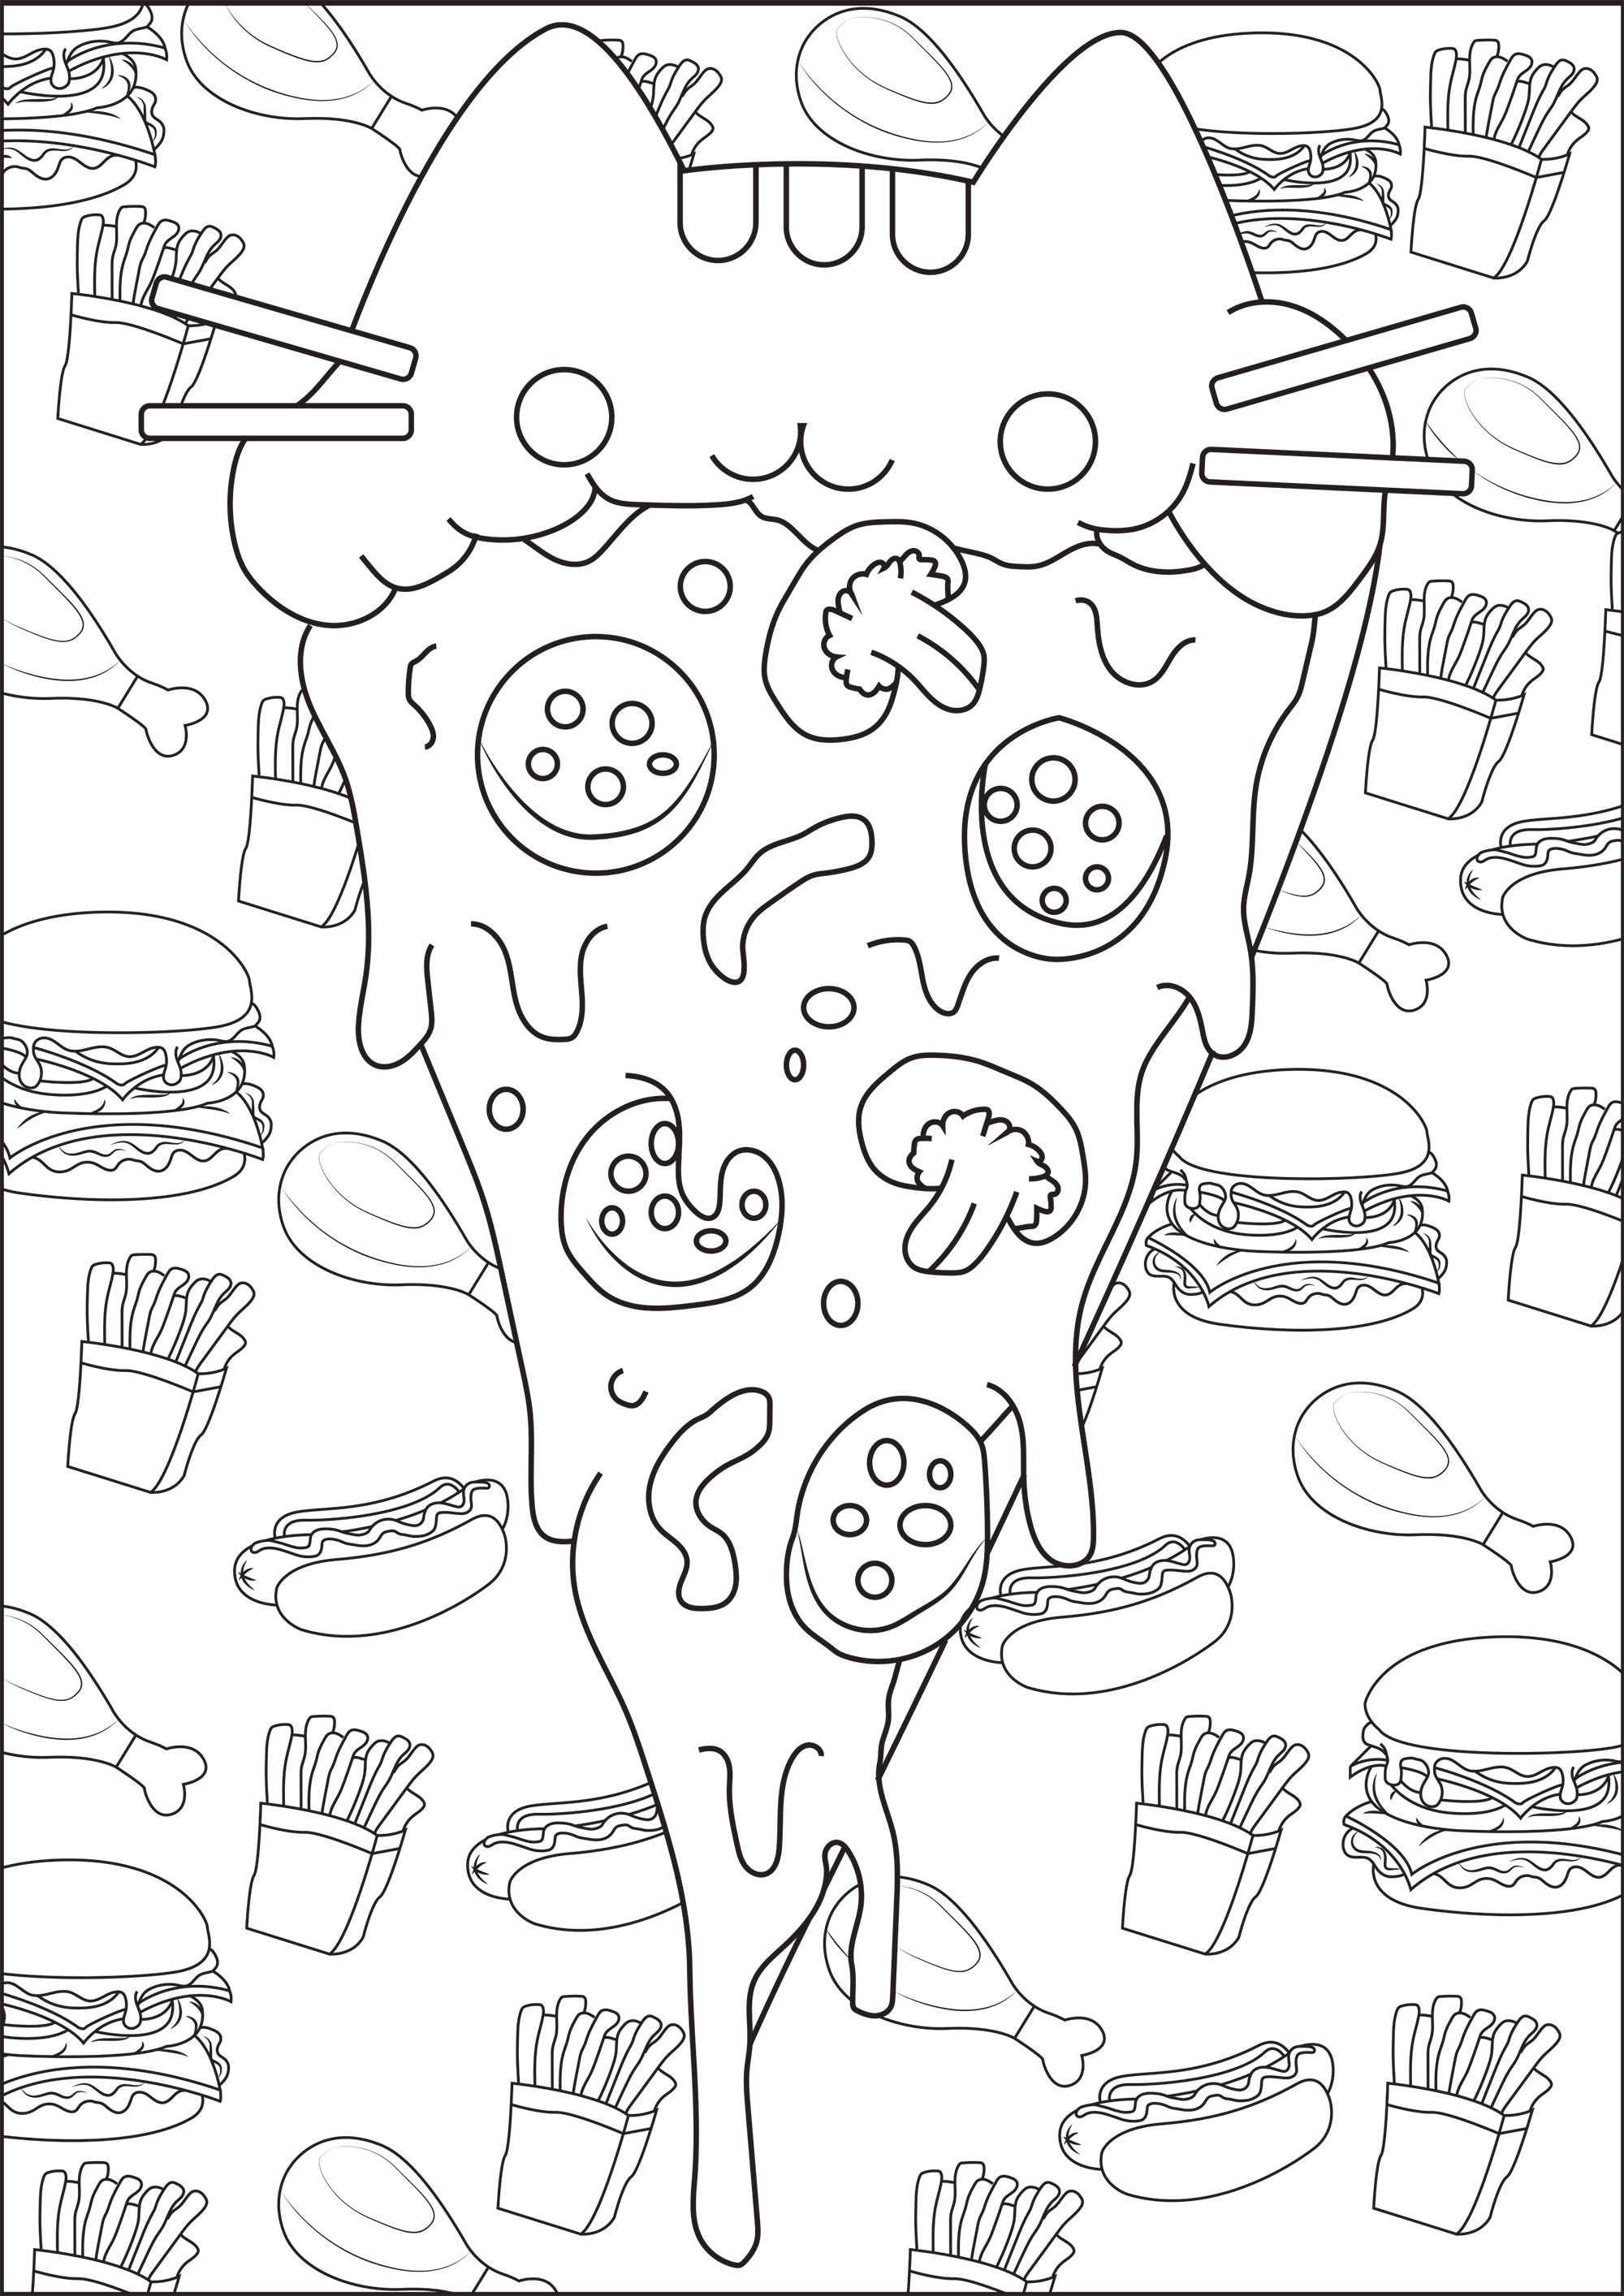 pizza pusheen color this pusheen pizza with a background full of junk food stuffs from the gallery doodling doodle art artist lucie